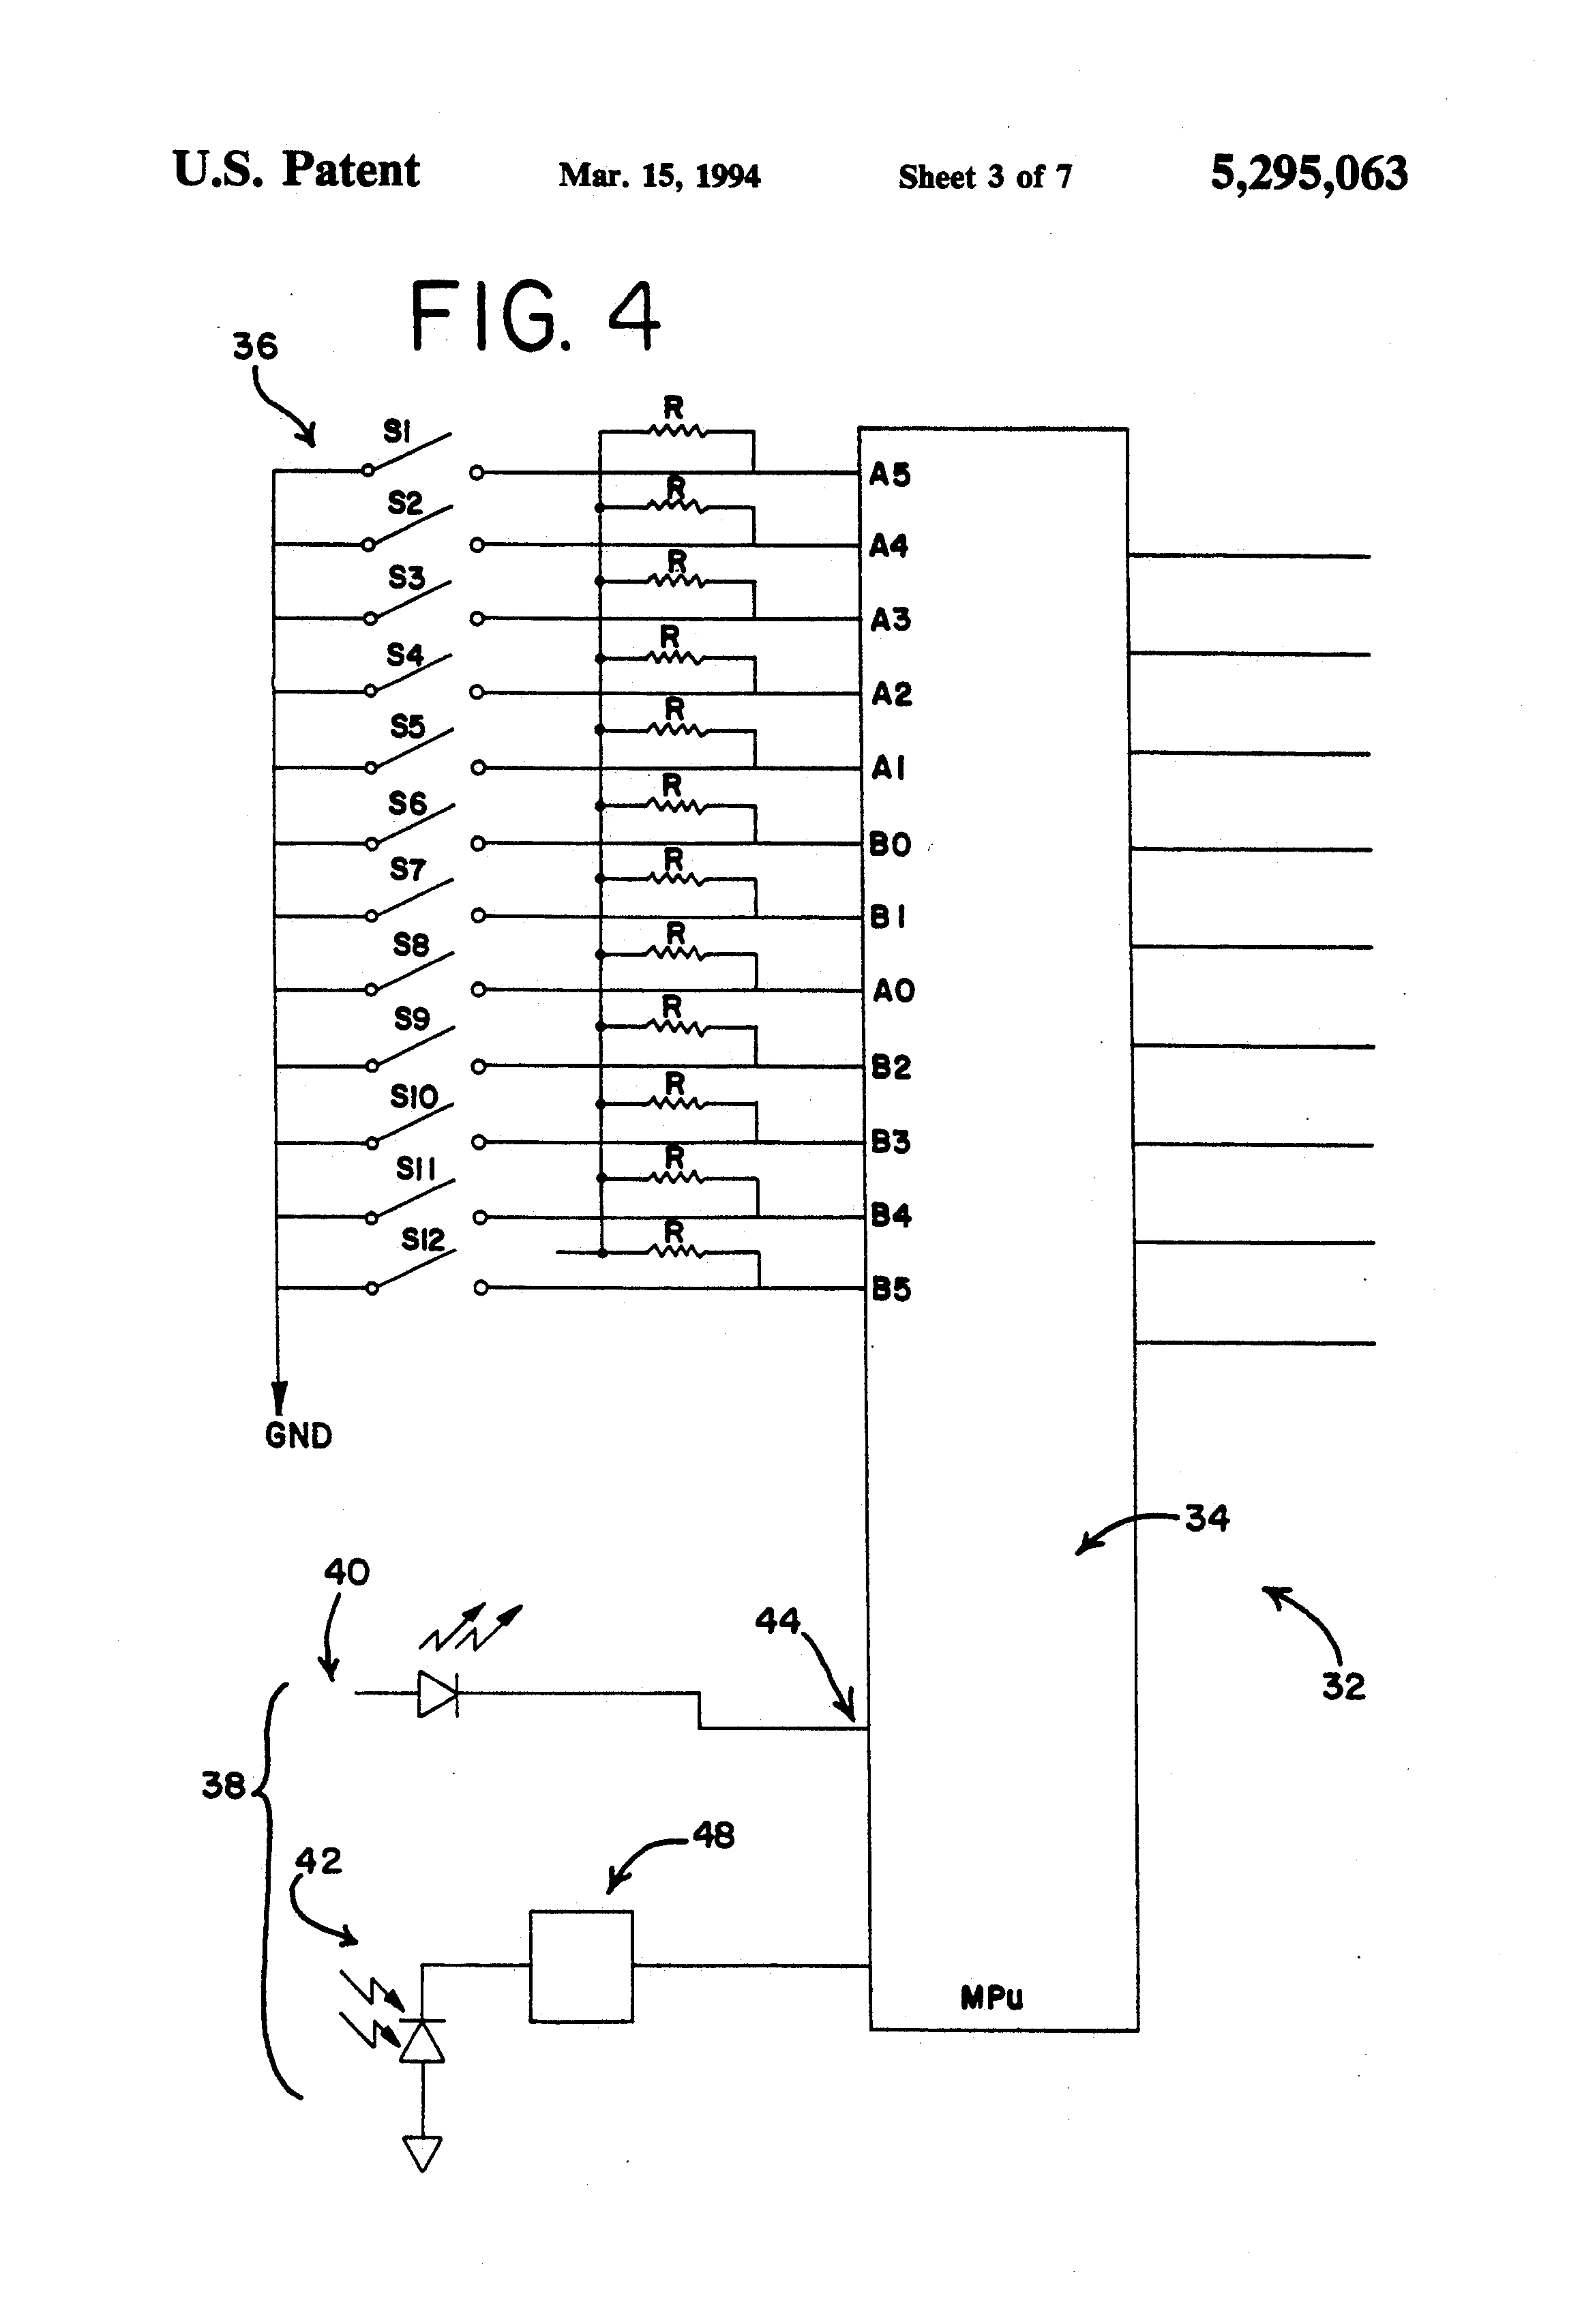 Capability Data Acquisition System : Patent us data acquisition system having setup